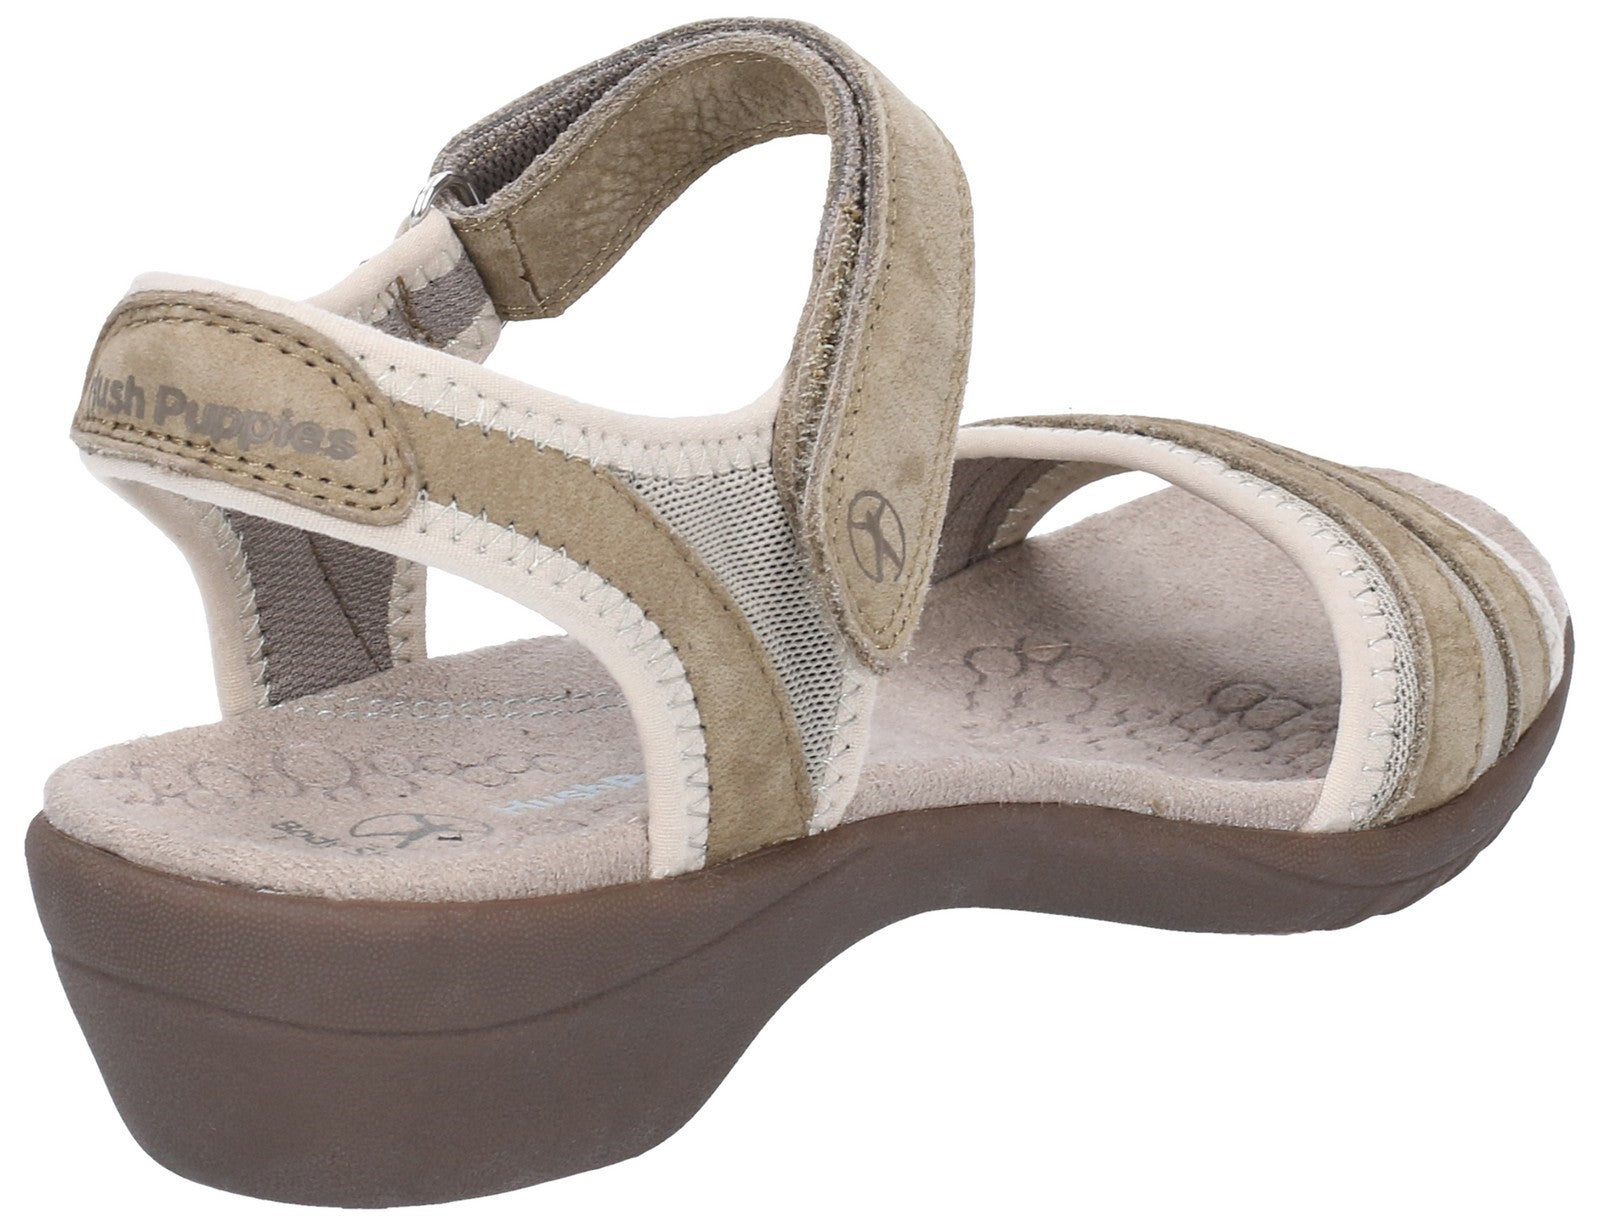 Hush Puppies Women's Athos Touch Fasten Sandal Various Colours 28386